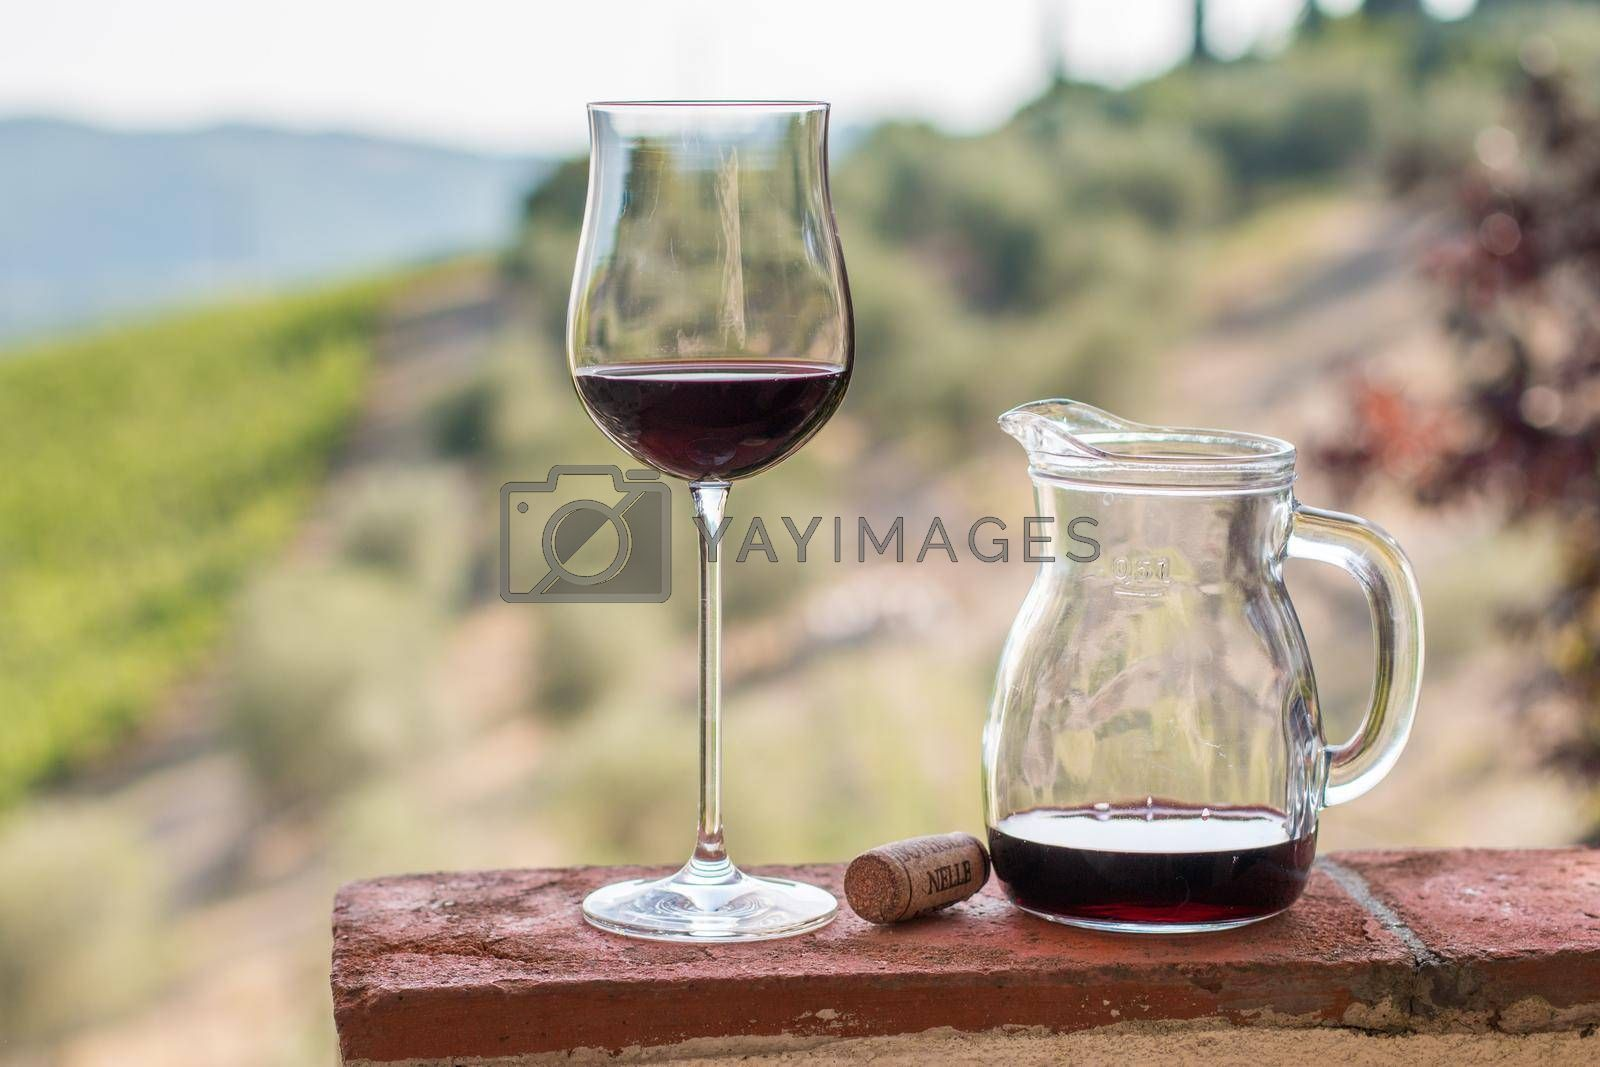 Enjoying a glass of red wine at Tuscany, Italy. Blurry wine yards in the background.